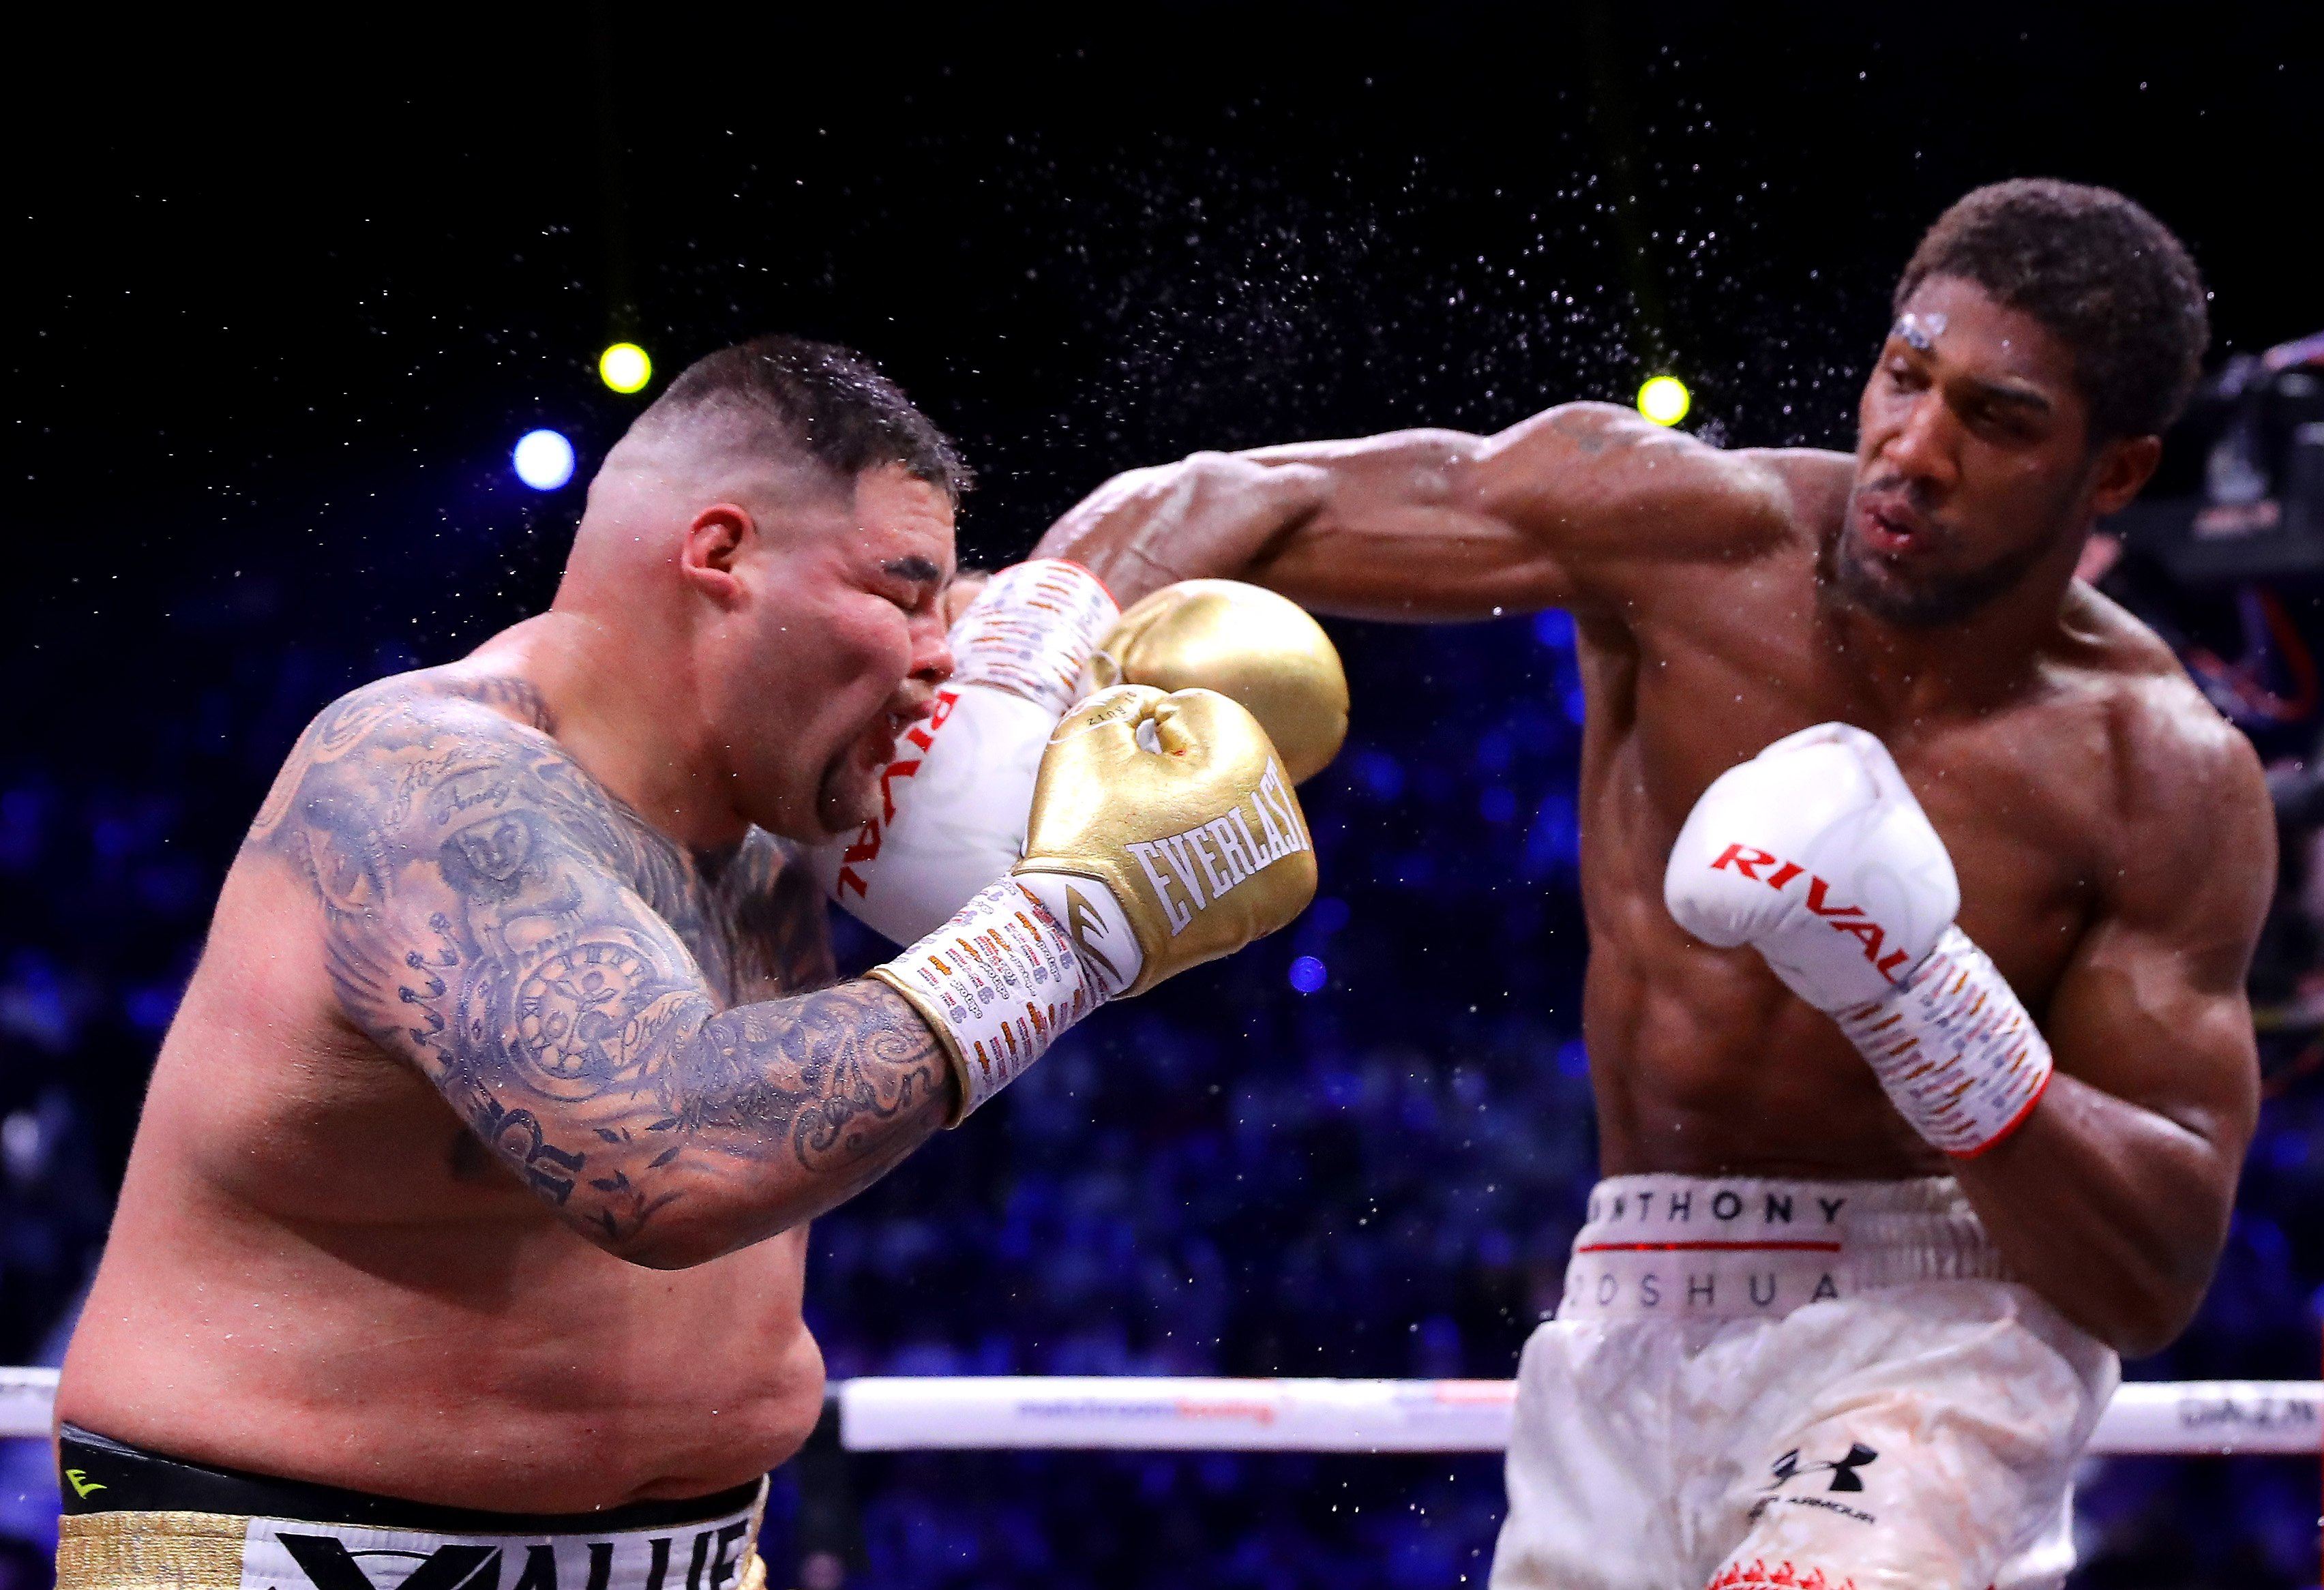 Anthony Joshua defeats Andy Ruiz Jr in Saudi Arabia - Joshua